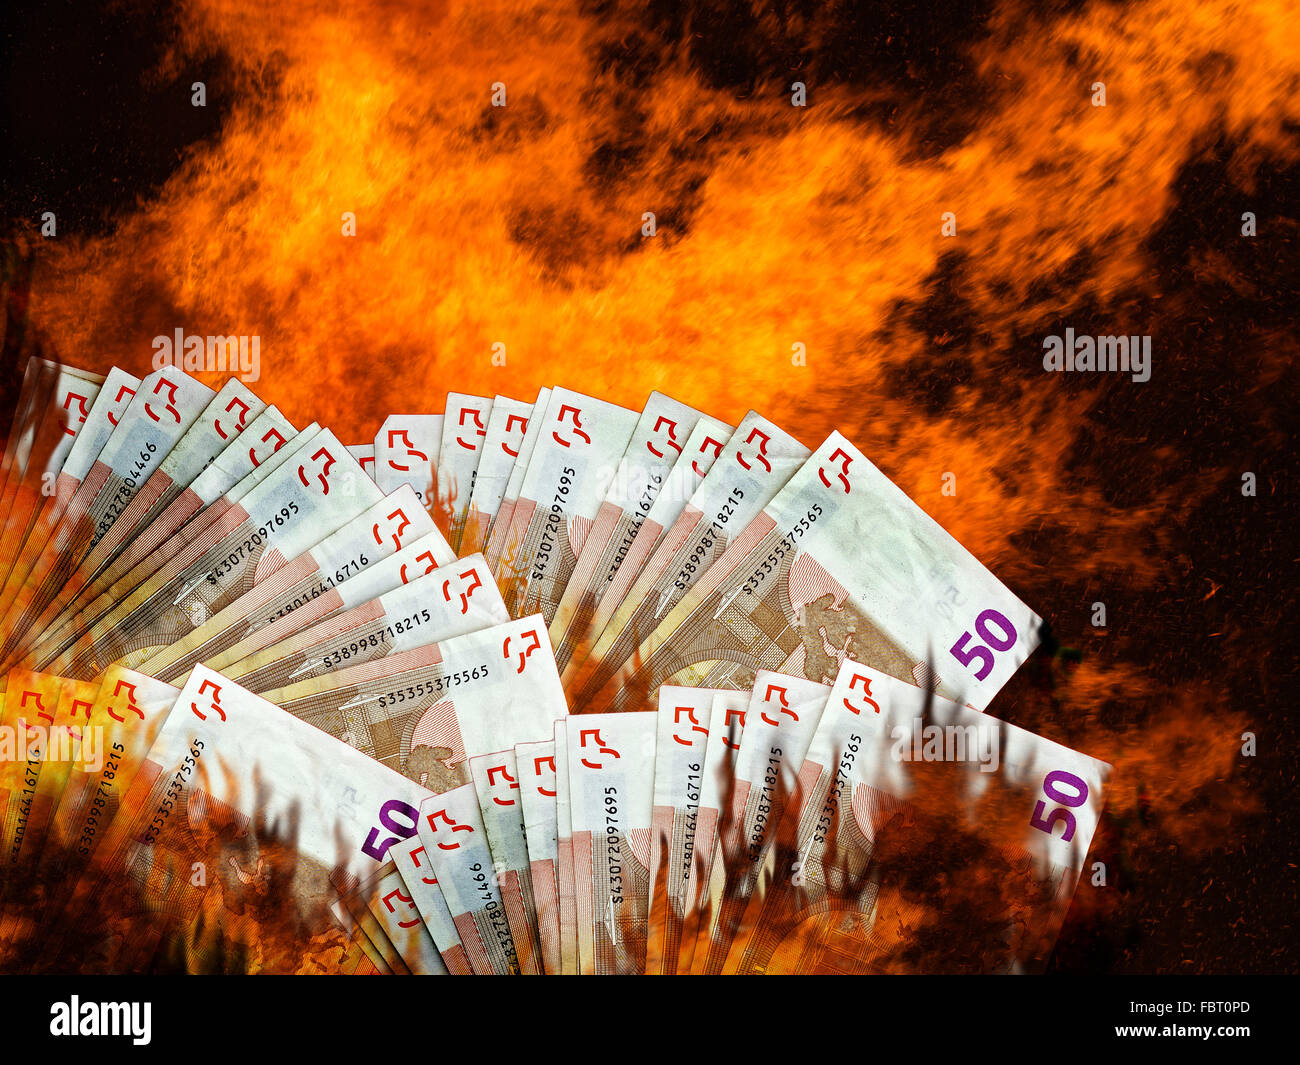 Euro currency or money markets on fire or in flames. Stock market, EU financial crisis etc. - Stock Image